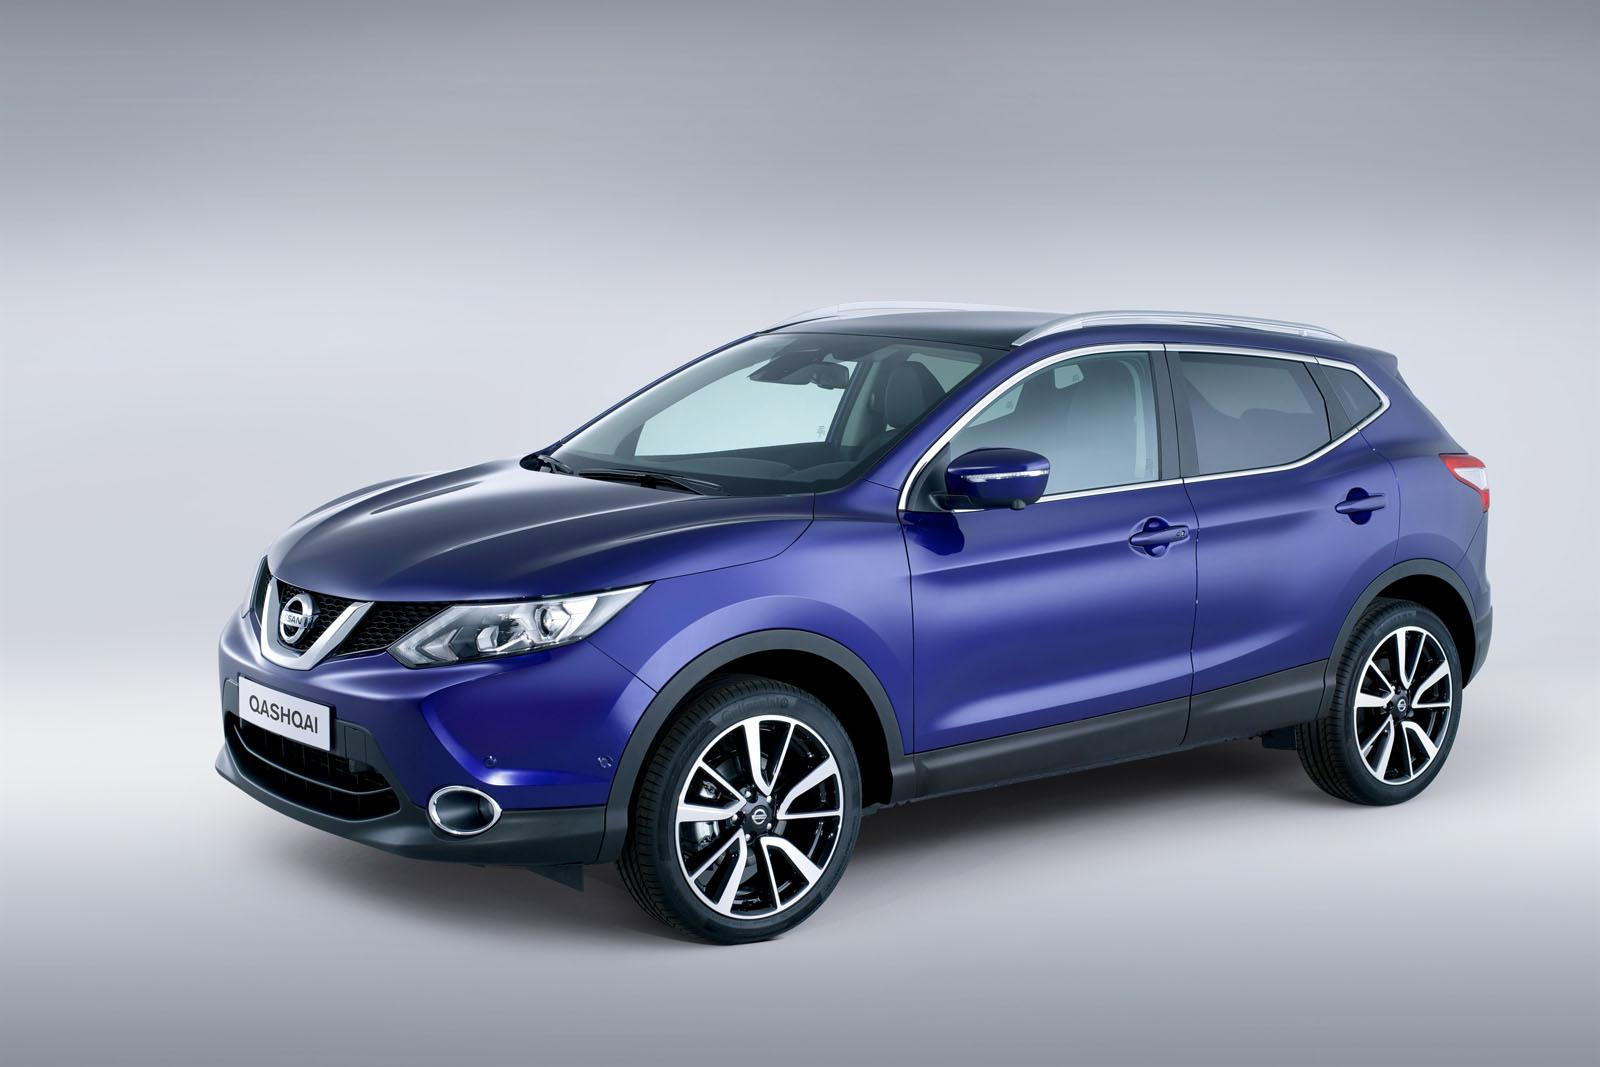 2014 Nissan Qashqai Blue Front Quarter on first toyota camry